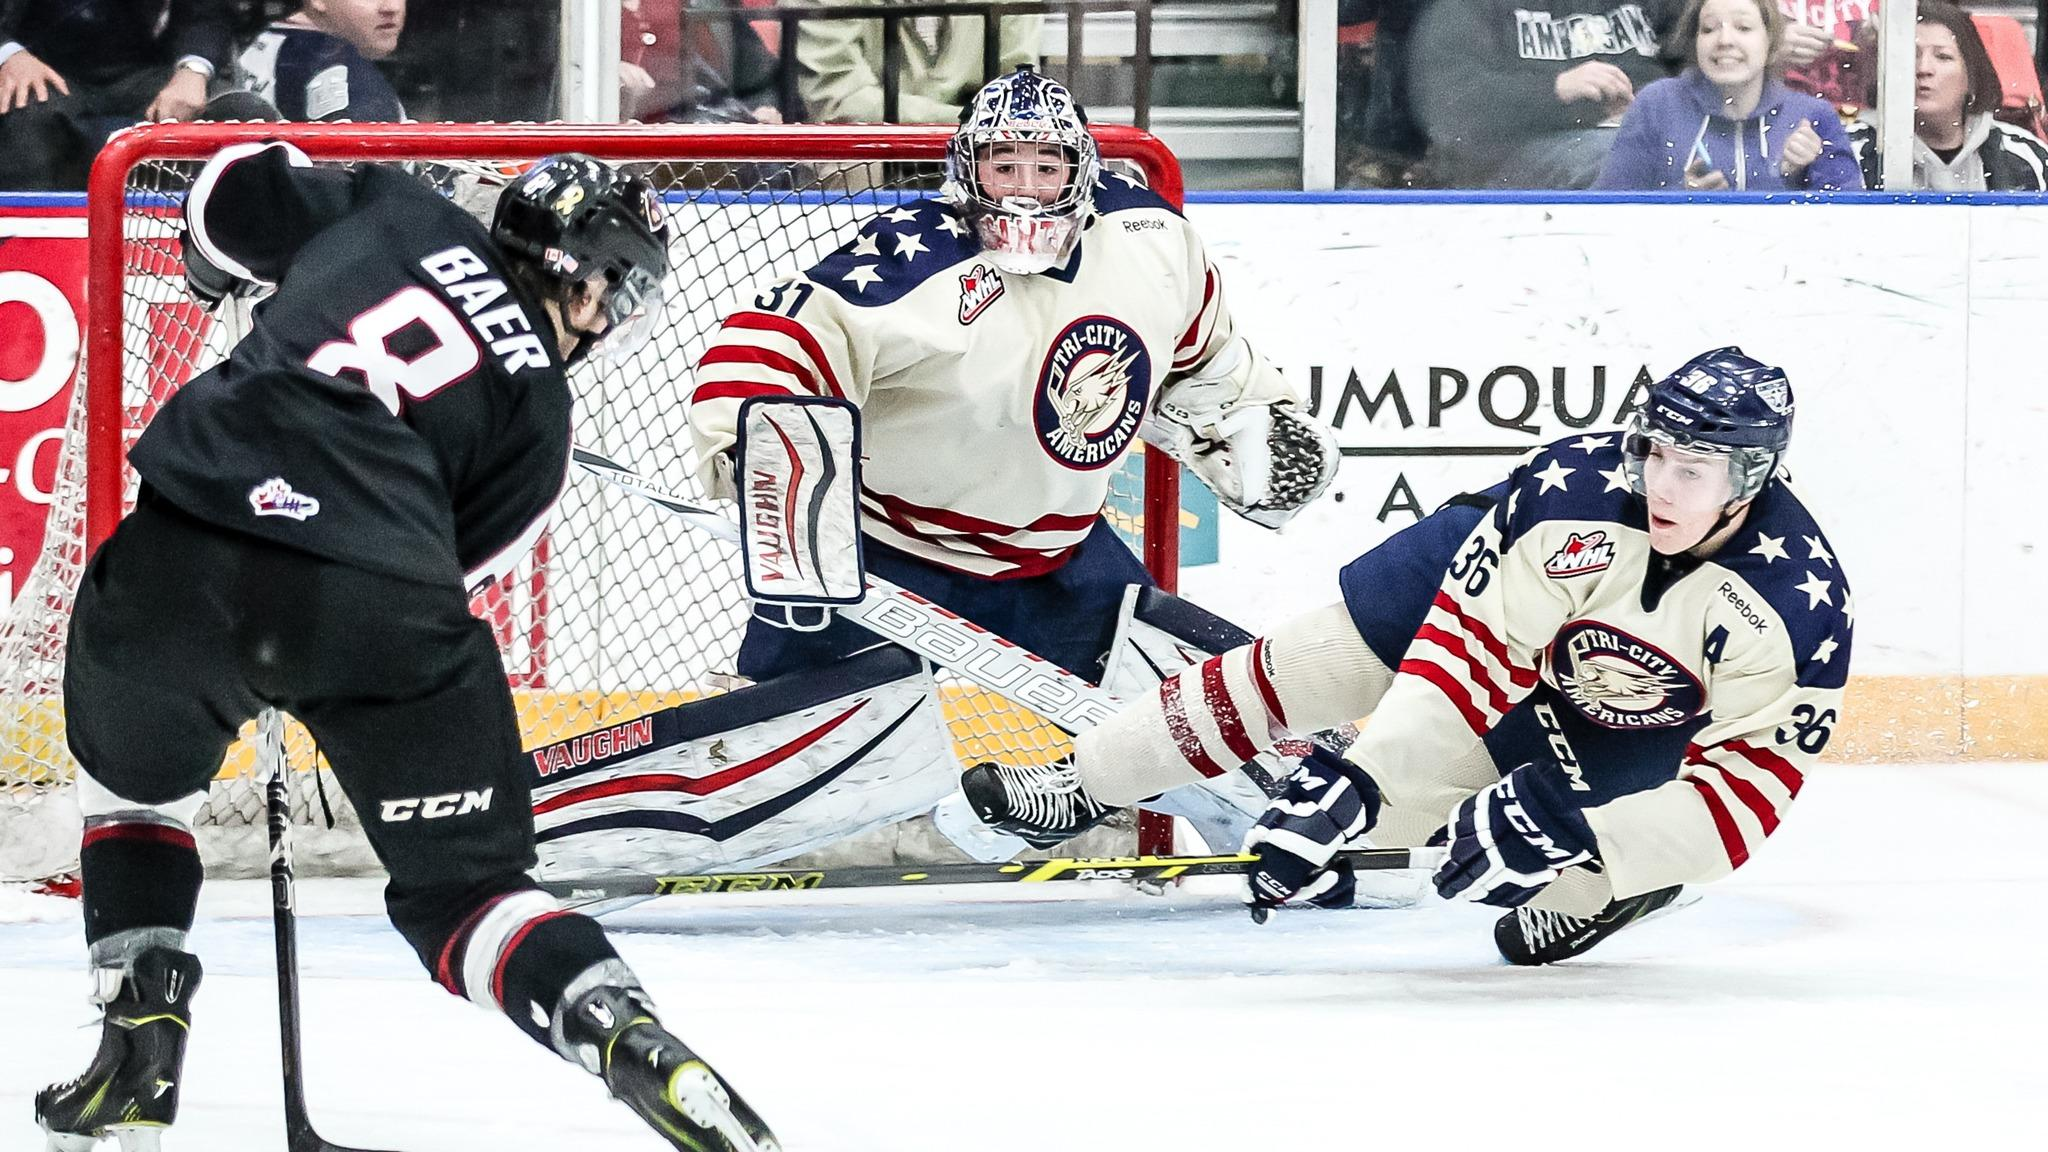 Tri-City Americans vs. Swift Current Broncos - Kennewick, WA 99336